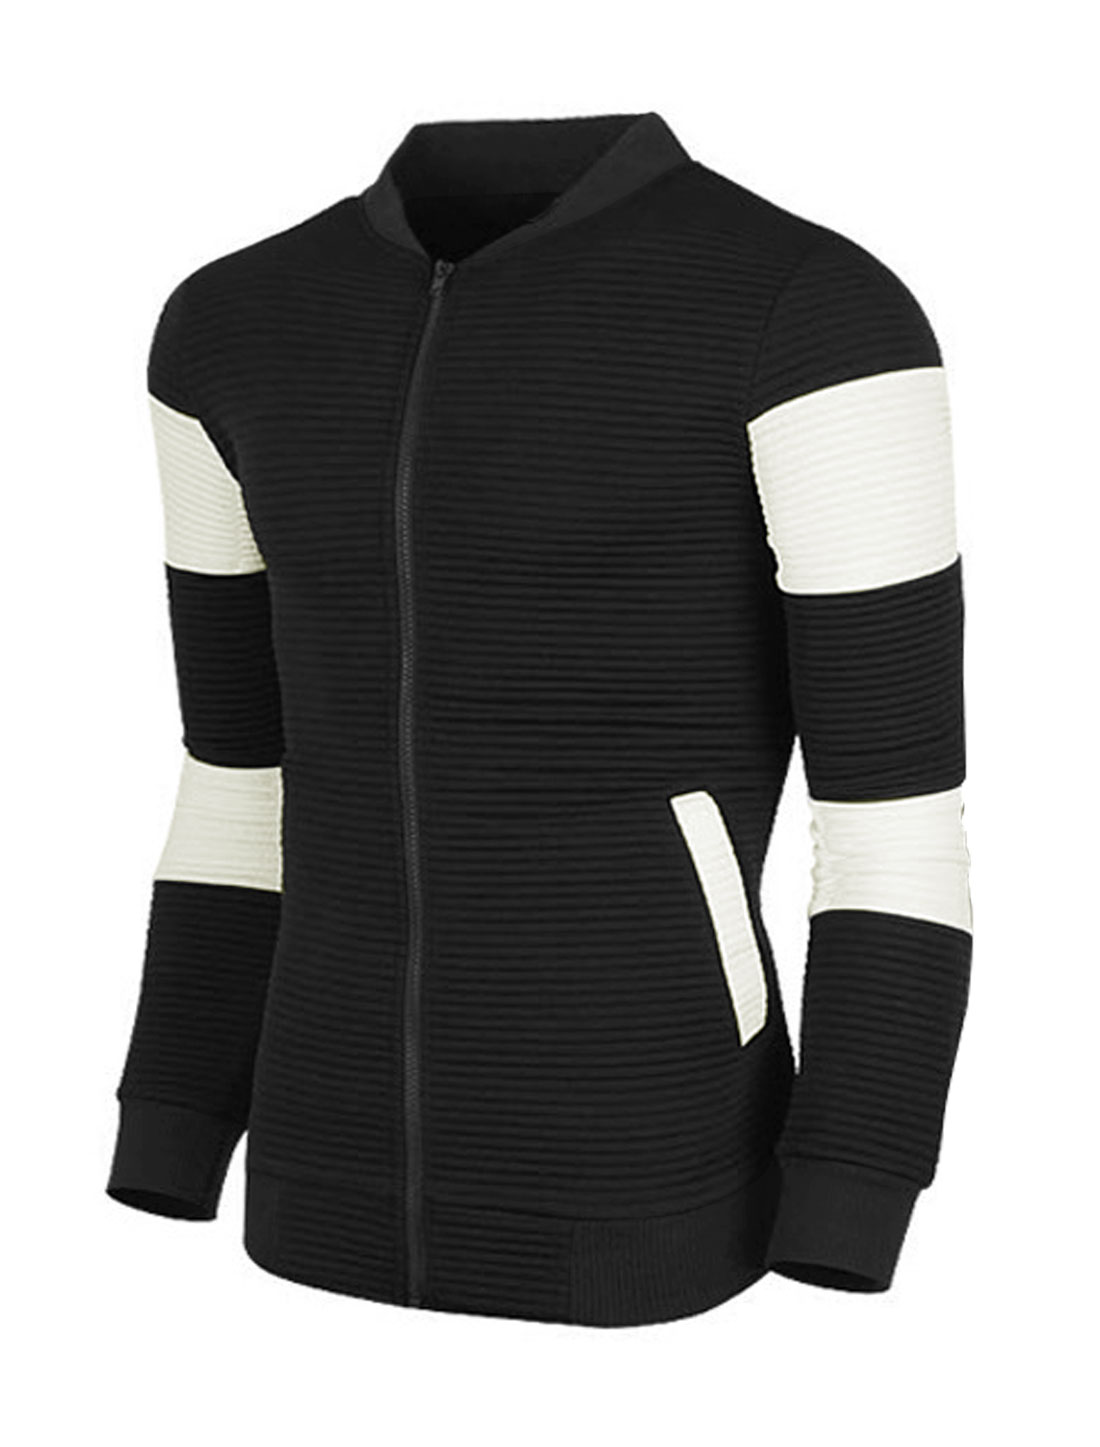 Men Stand Collar Zip Up Contrast Color Slim Fit Jacket Black M